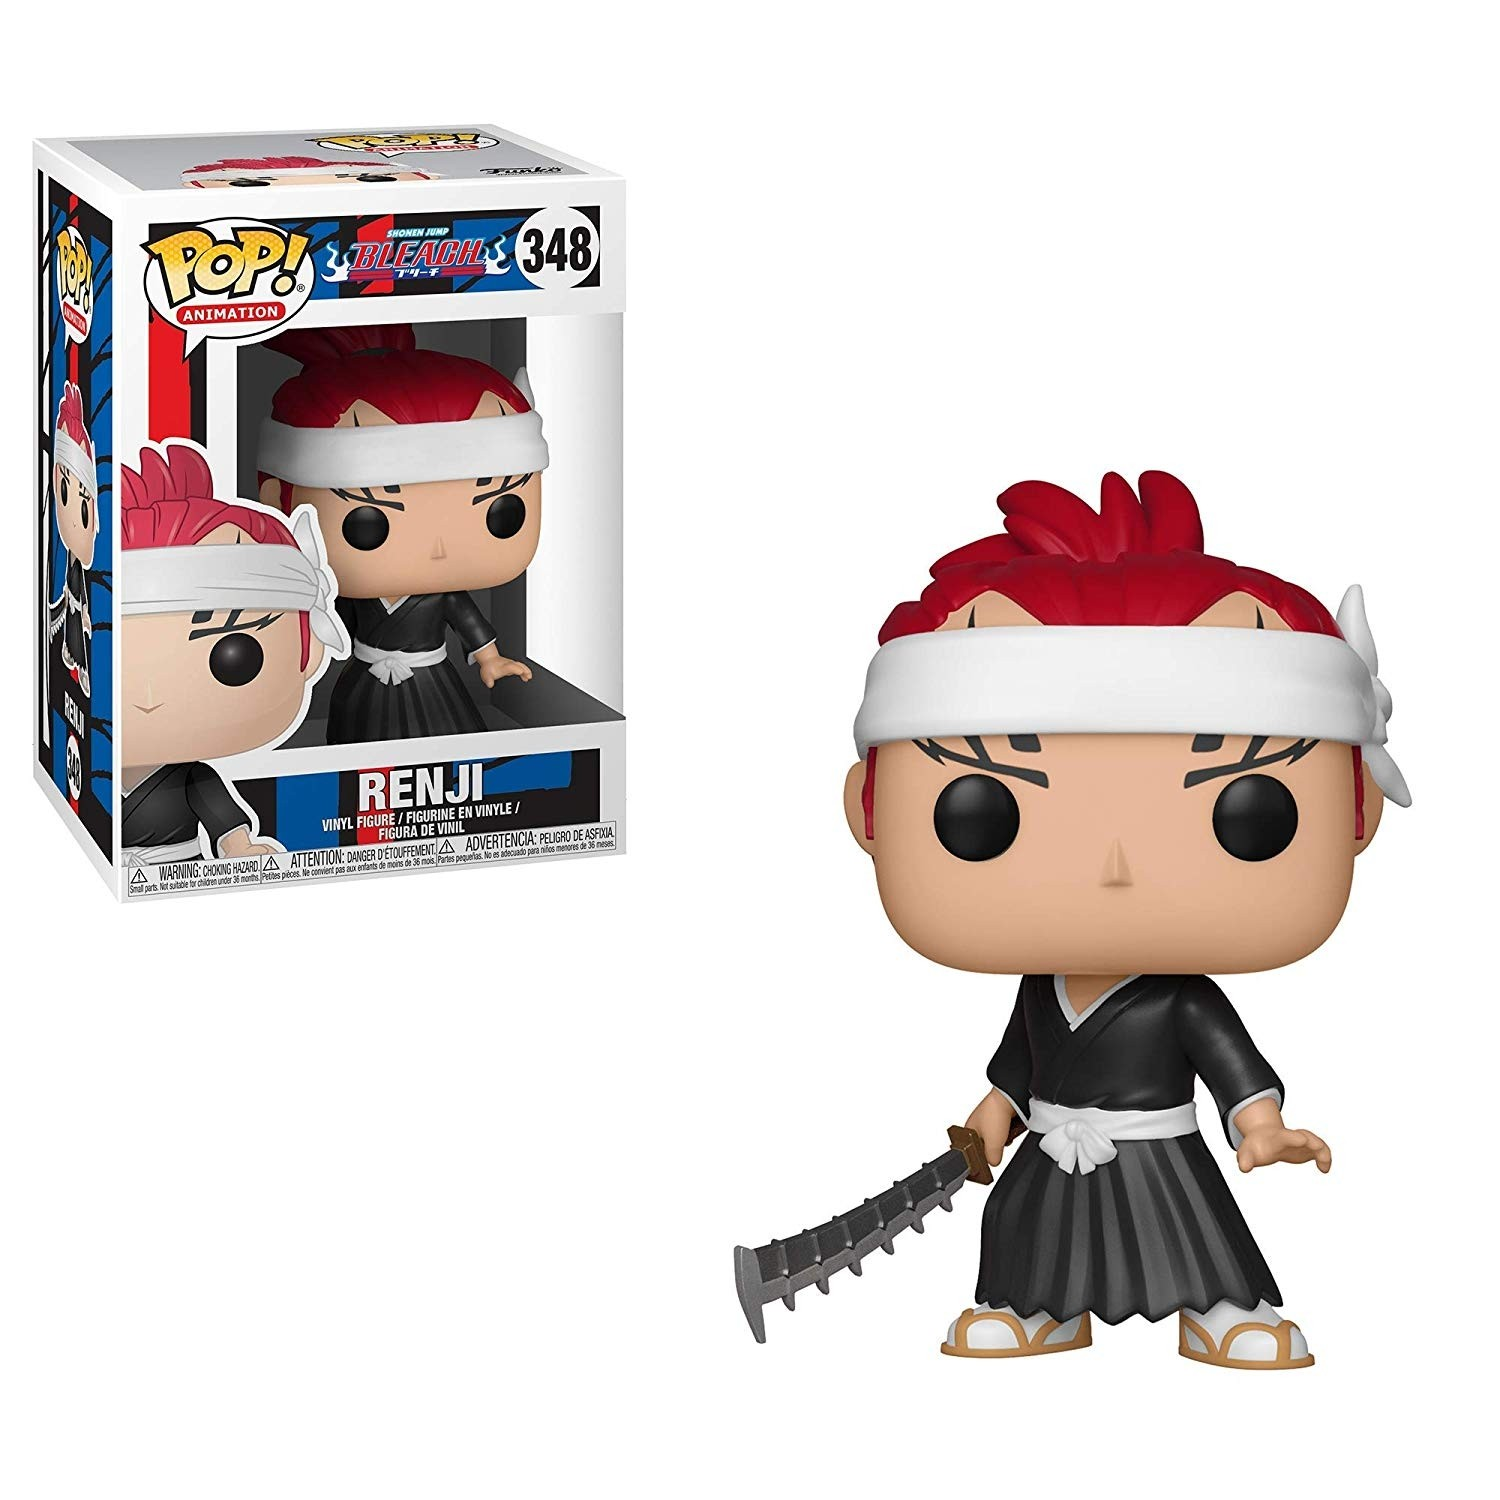 POP! Vinyl: Bleach: Renji - 10 cm